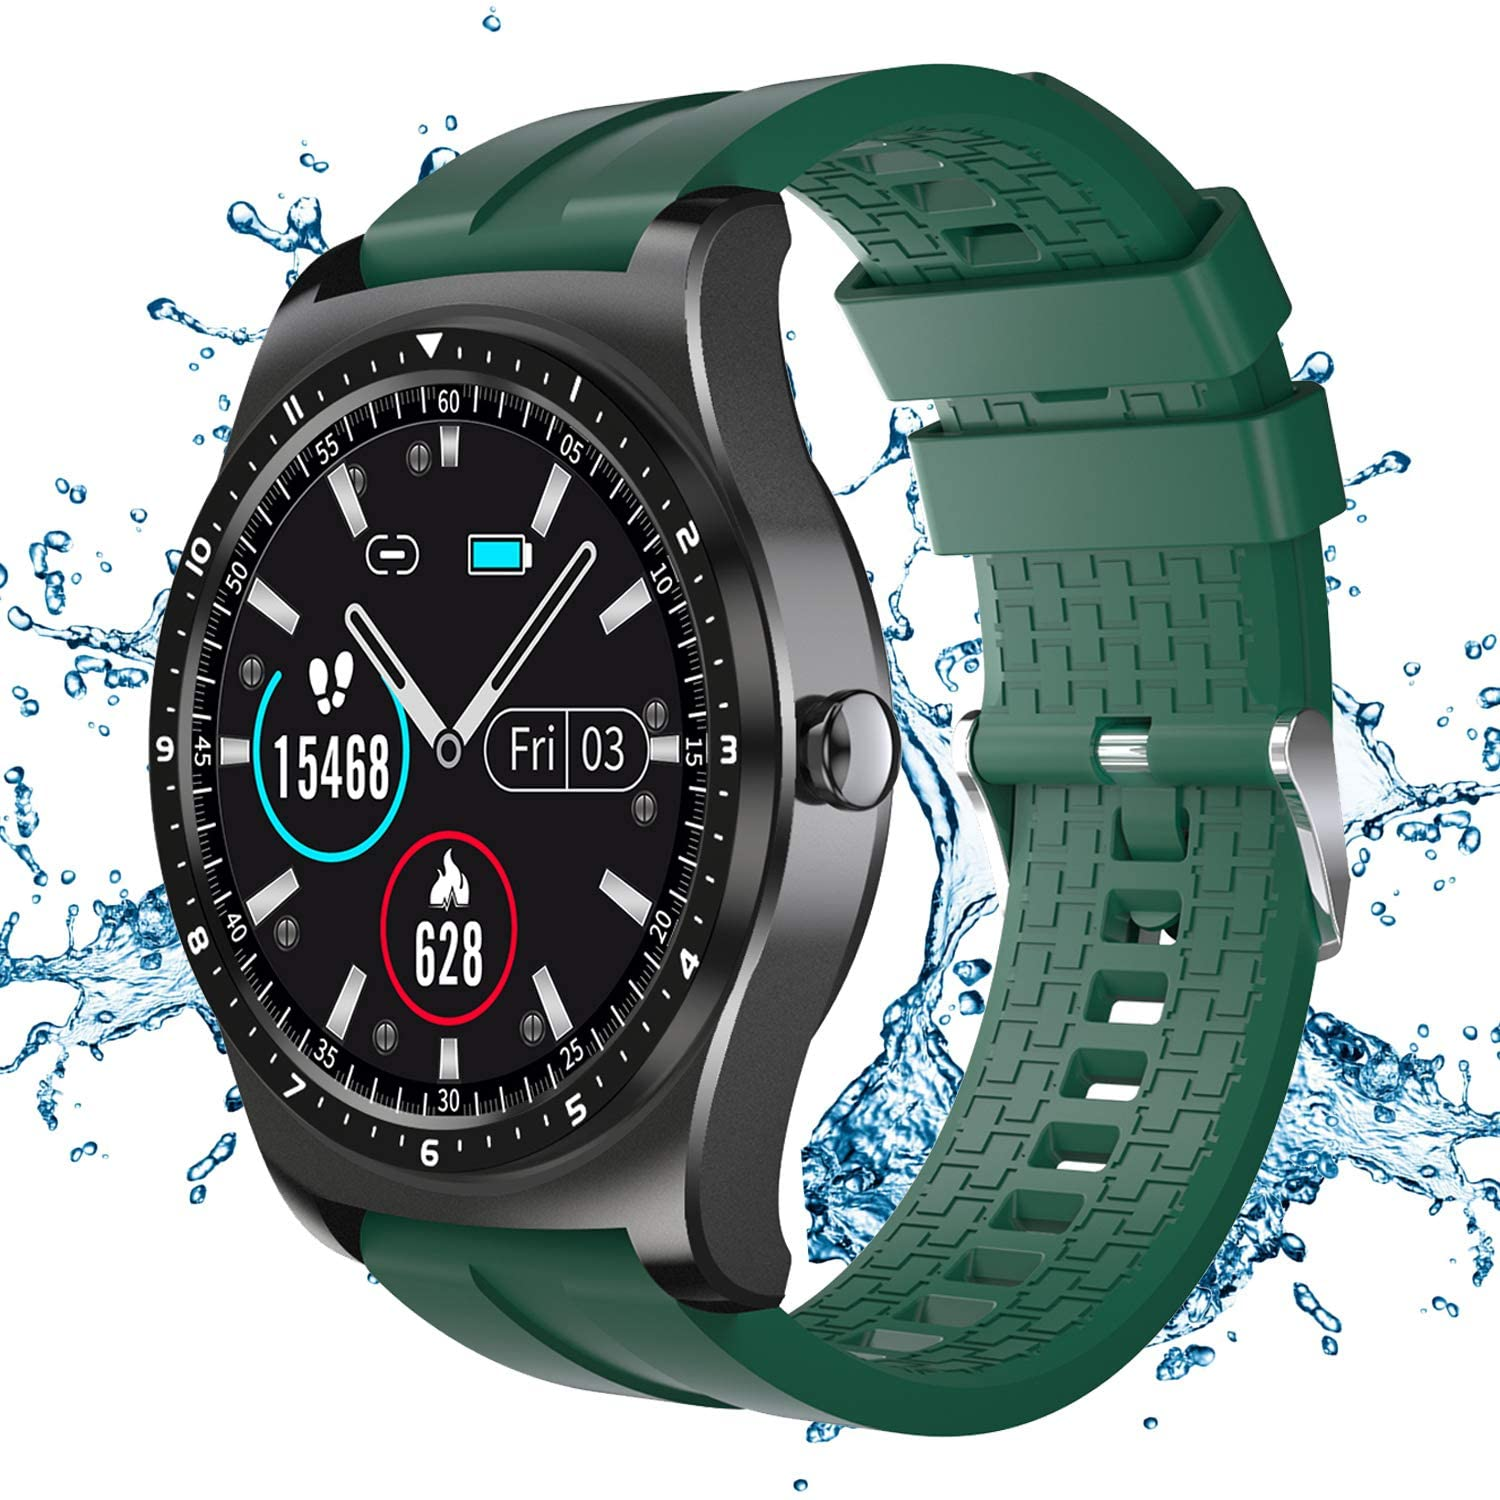 Smart Watch Fitness Tracker Compatible with Android & iOS, 1.3